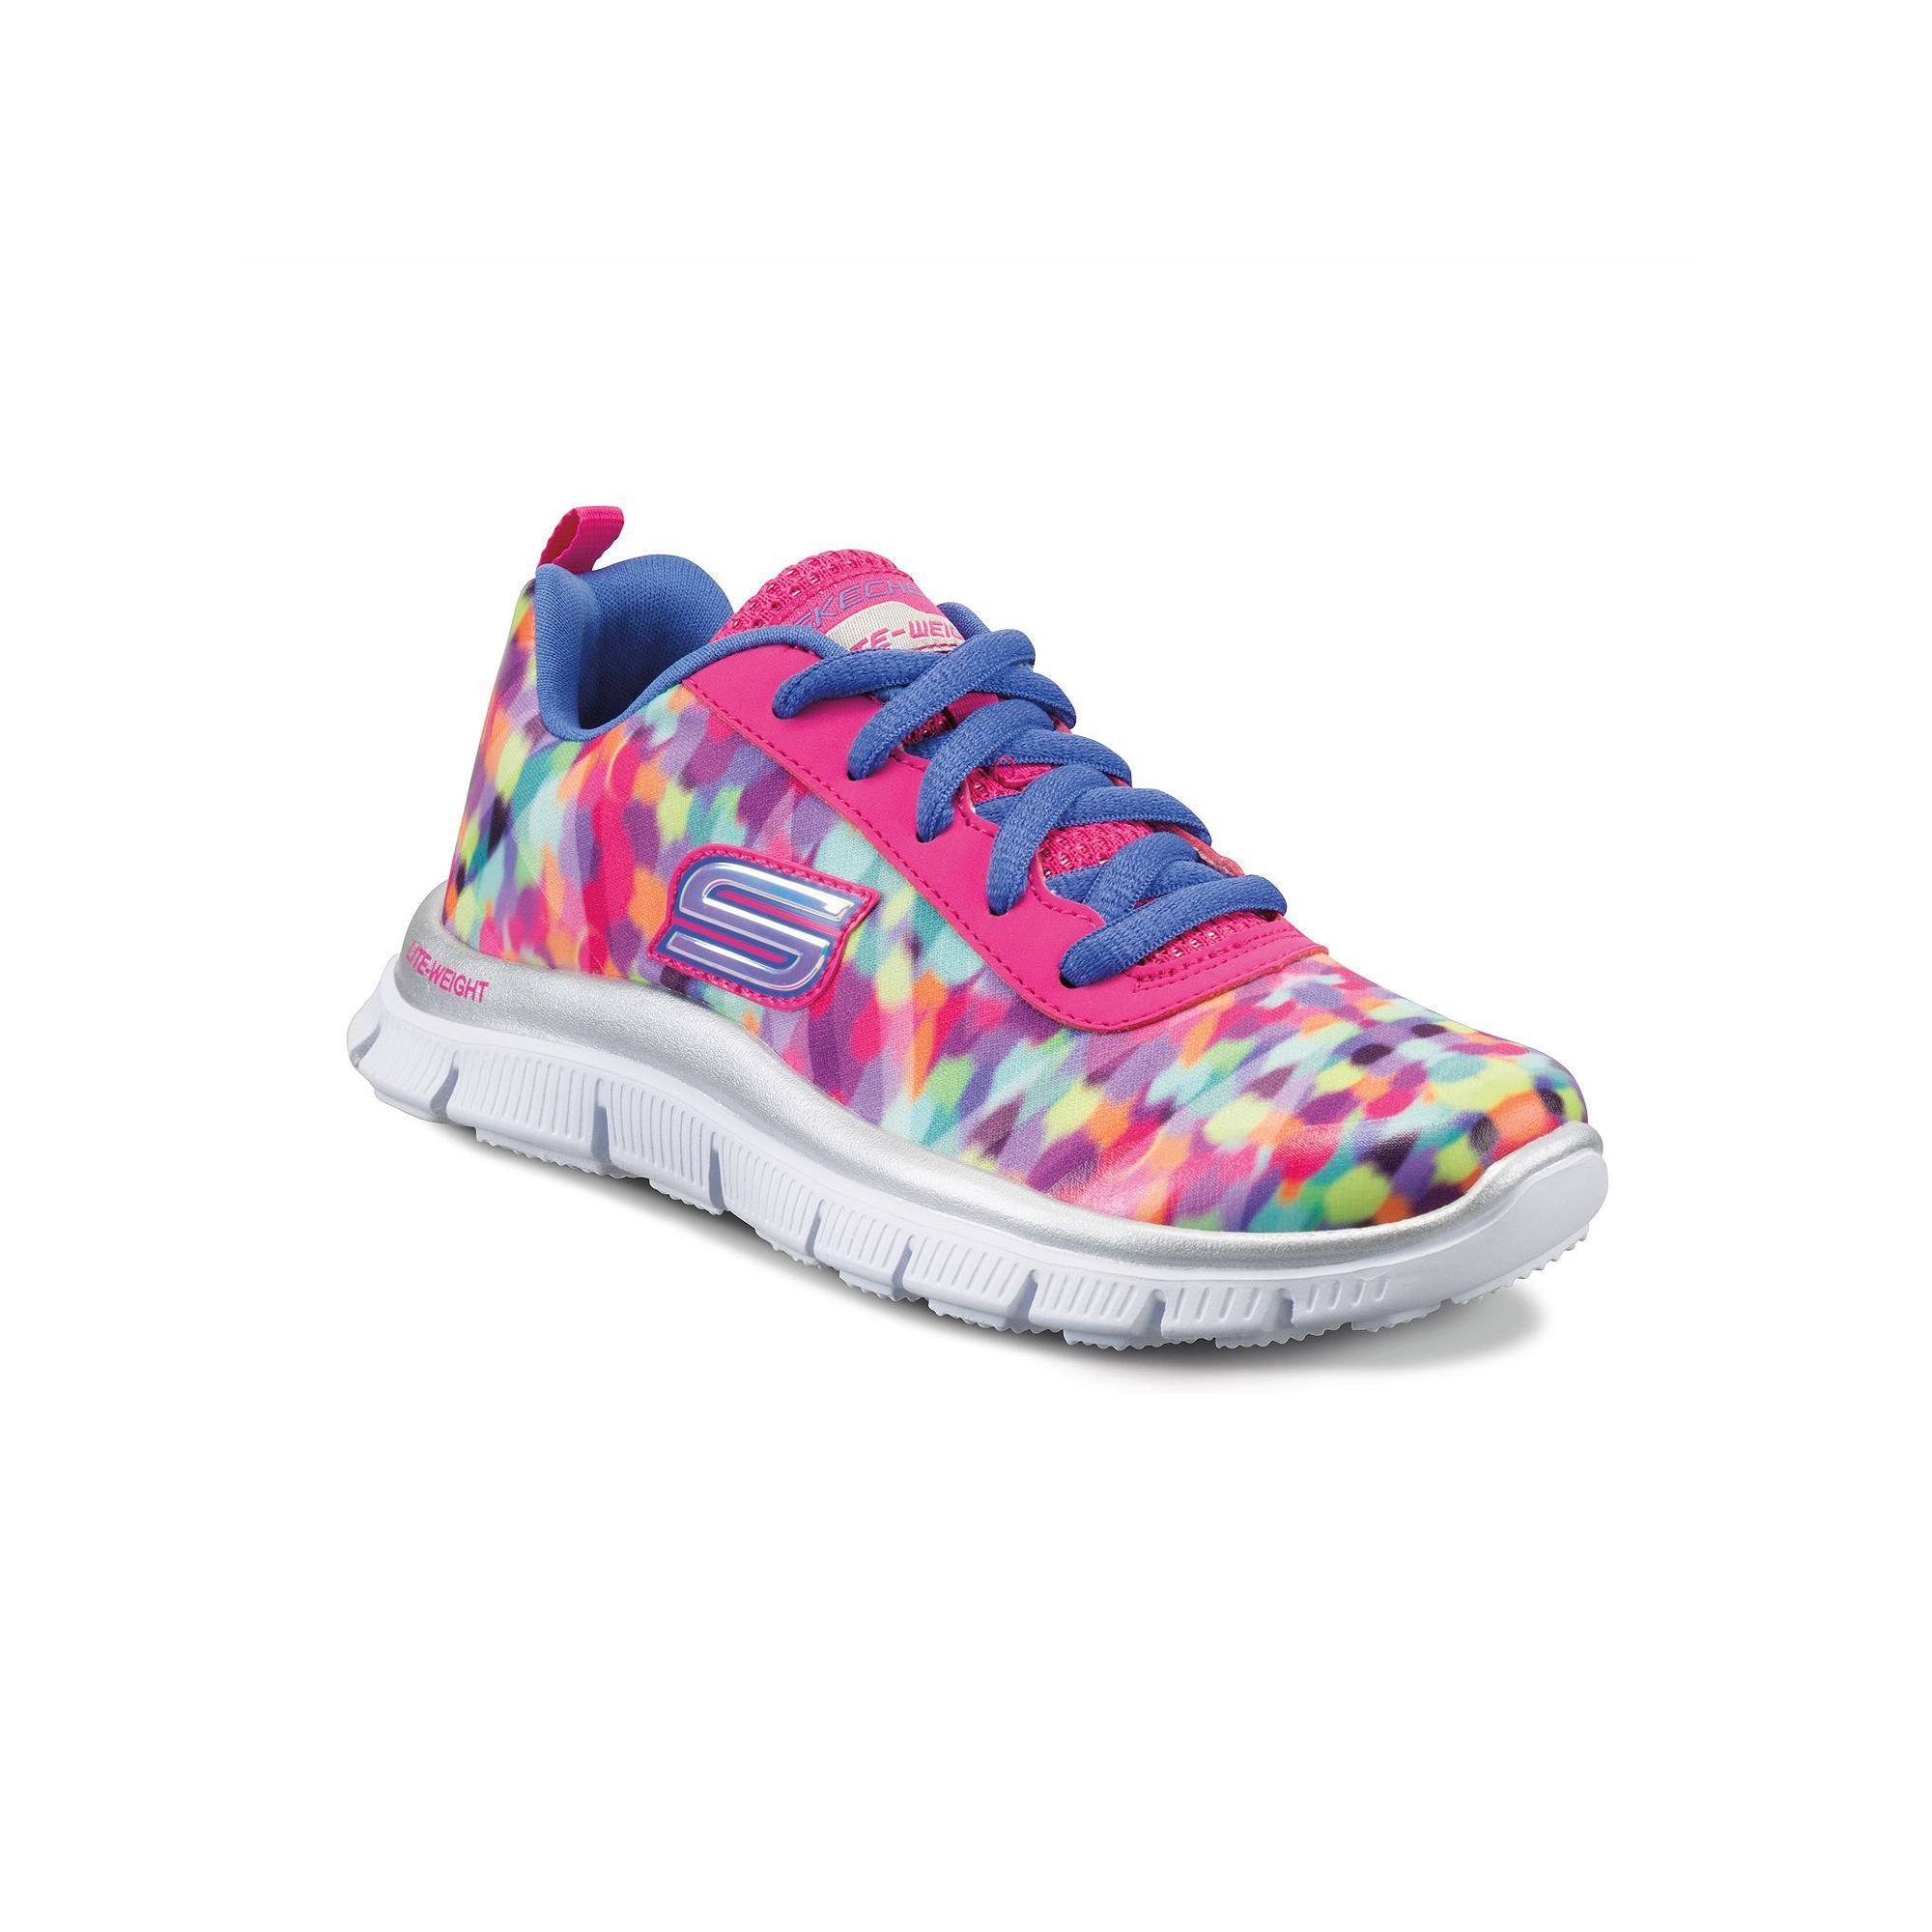 687130590e6e Skechers Skech Appeal Rainbow Grade School Girls  Shoes